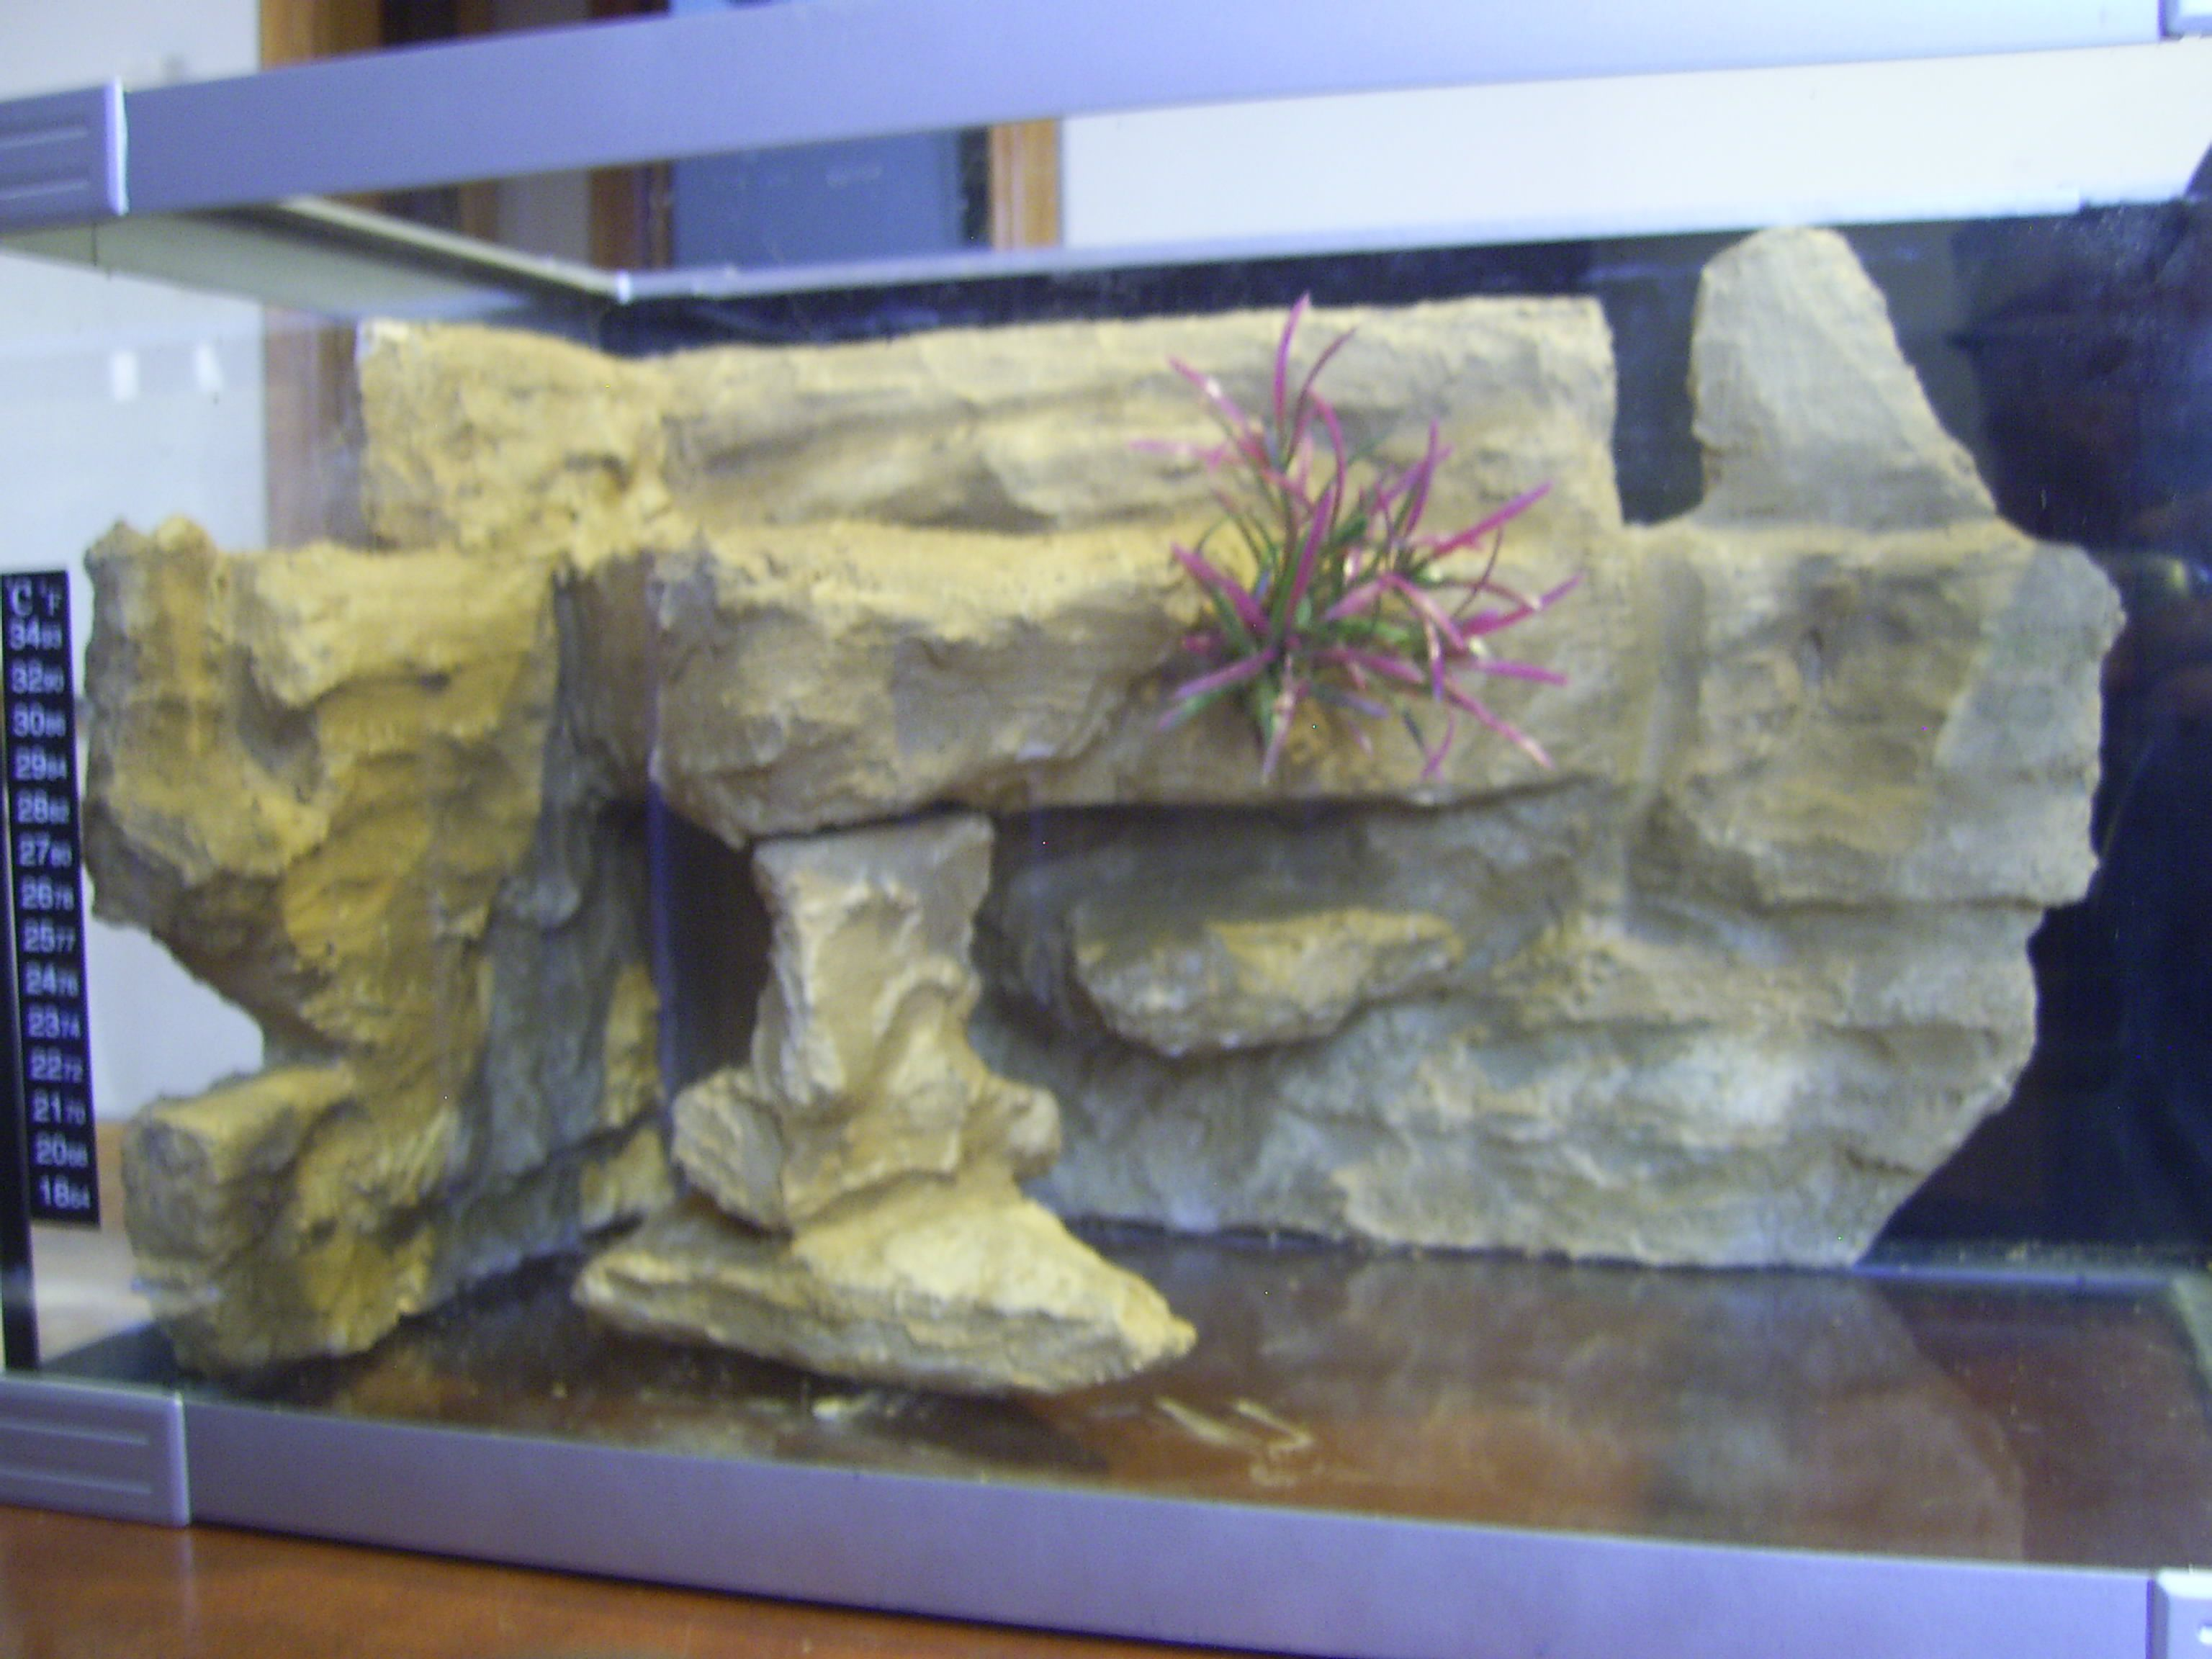 3d aquarium fish tank background feature rock - Diy Aquarium Background